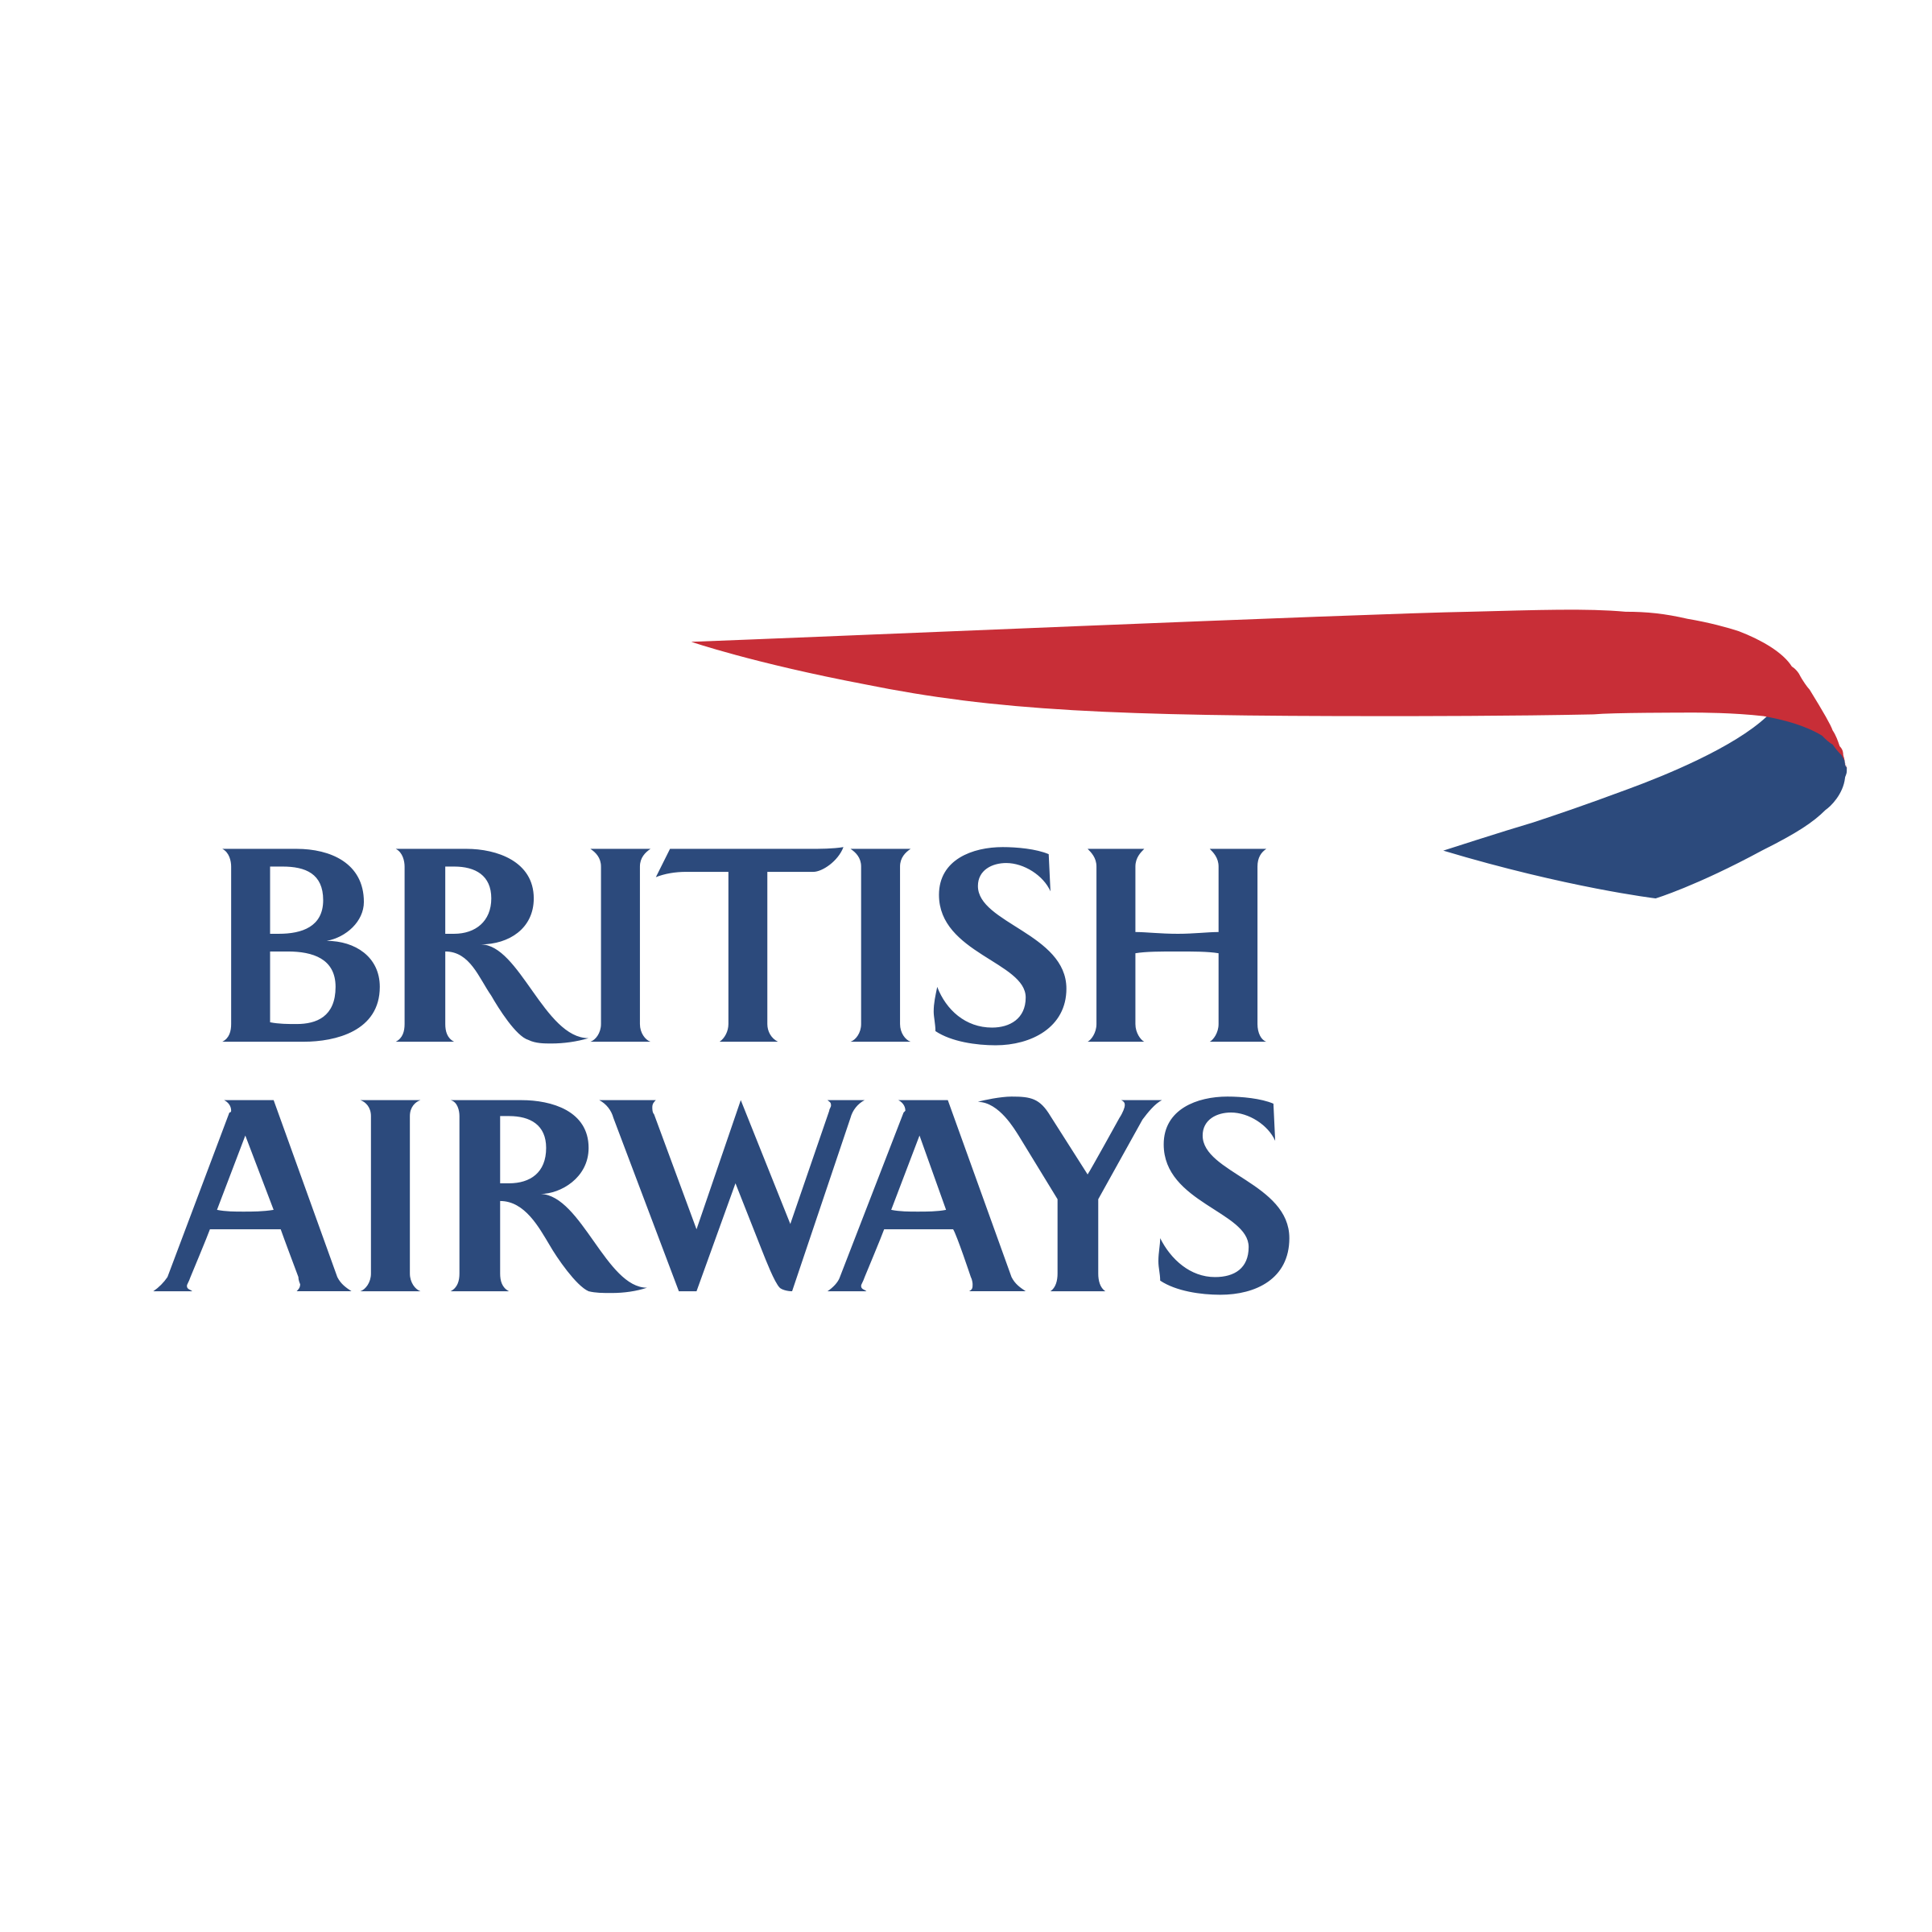 British Airways diecast model planes